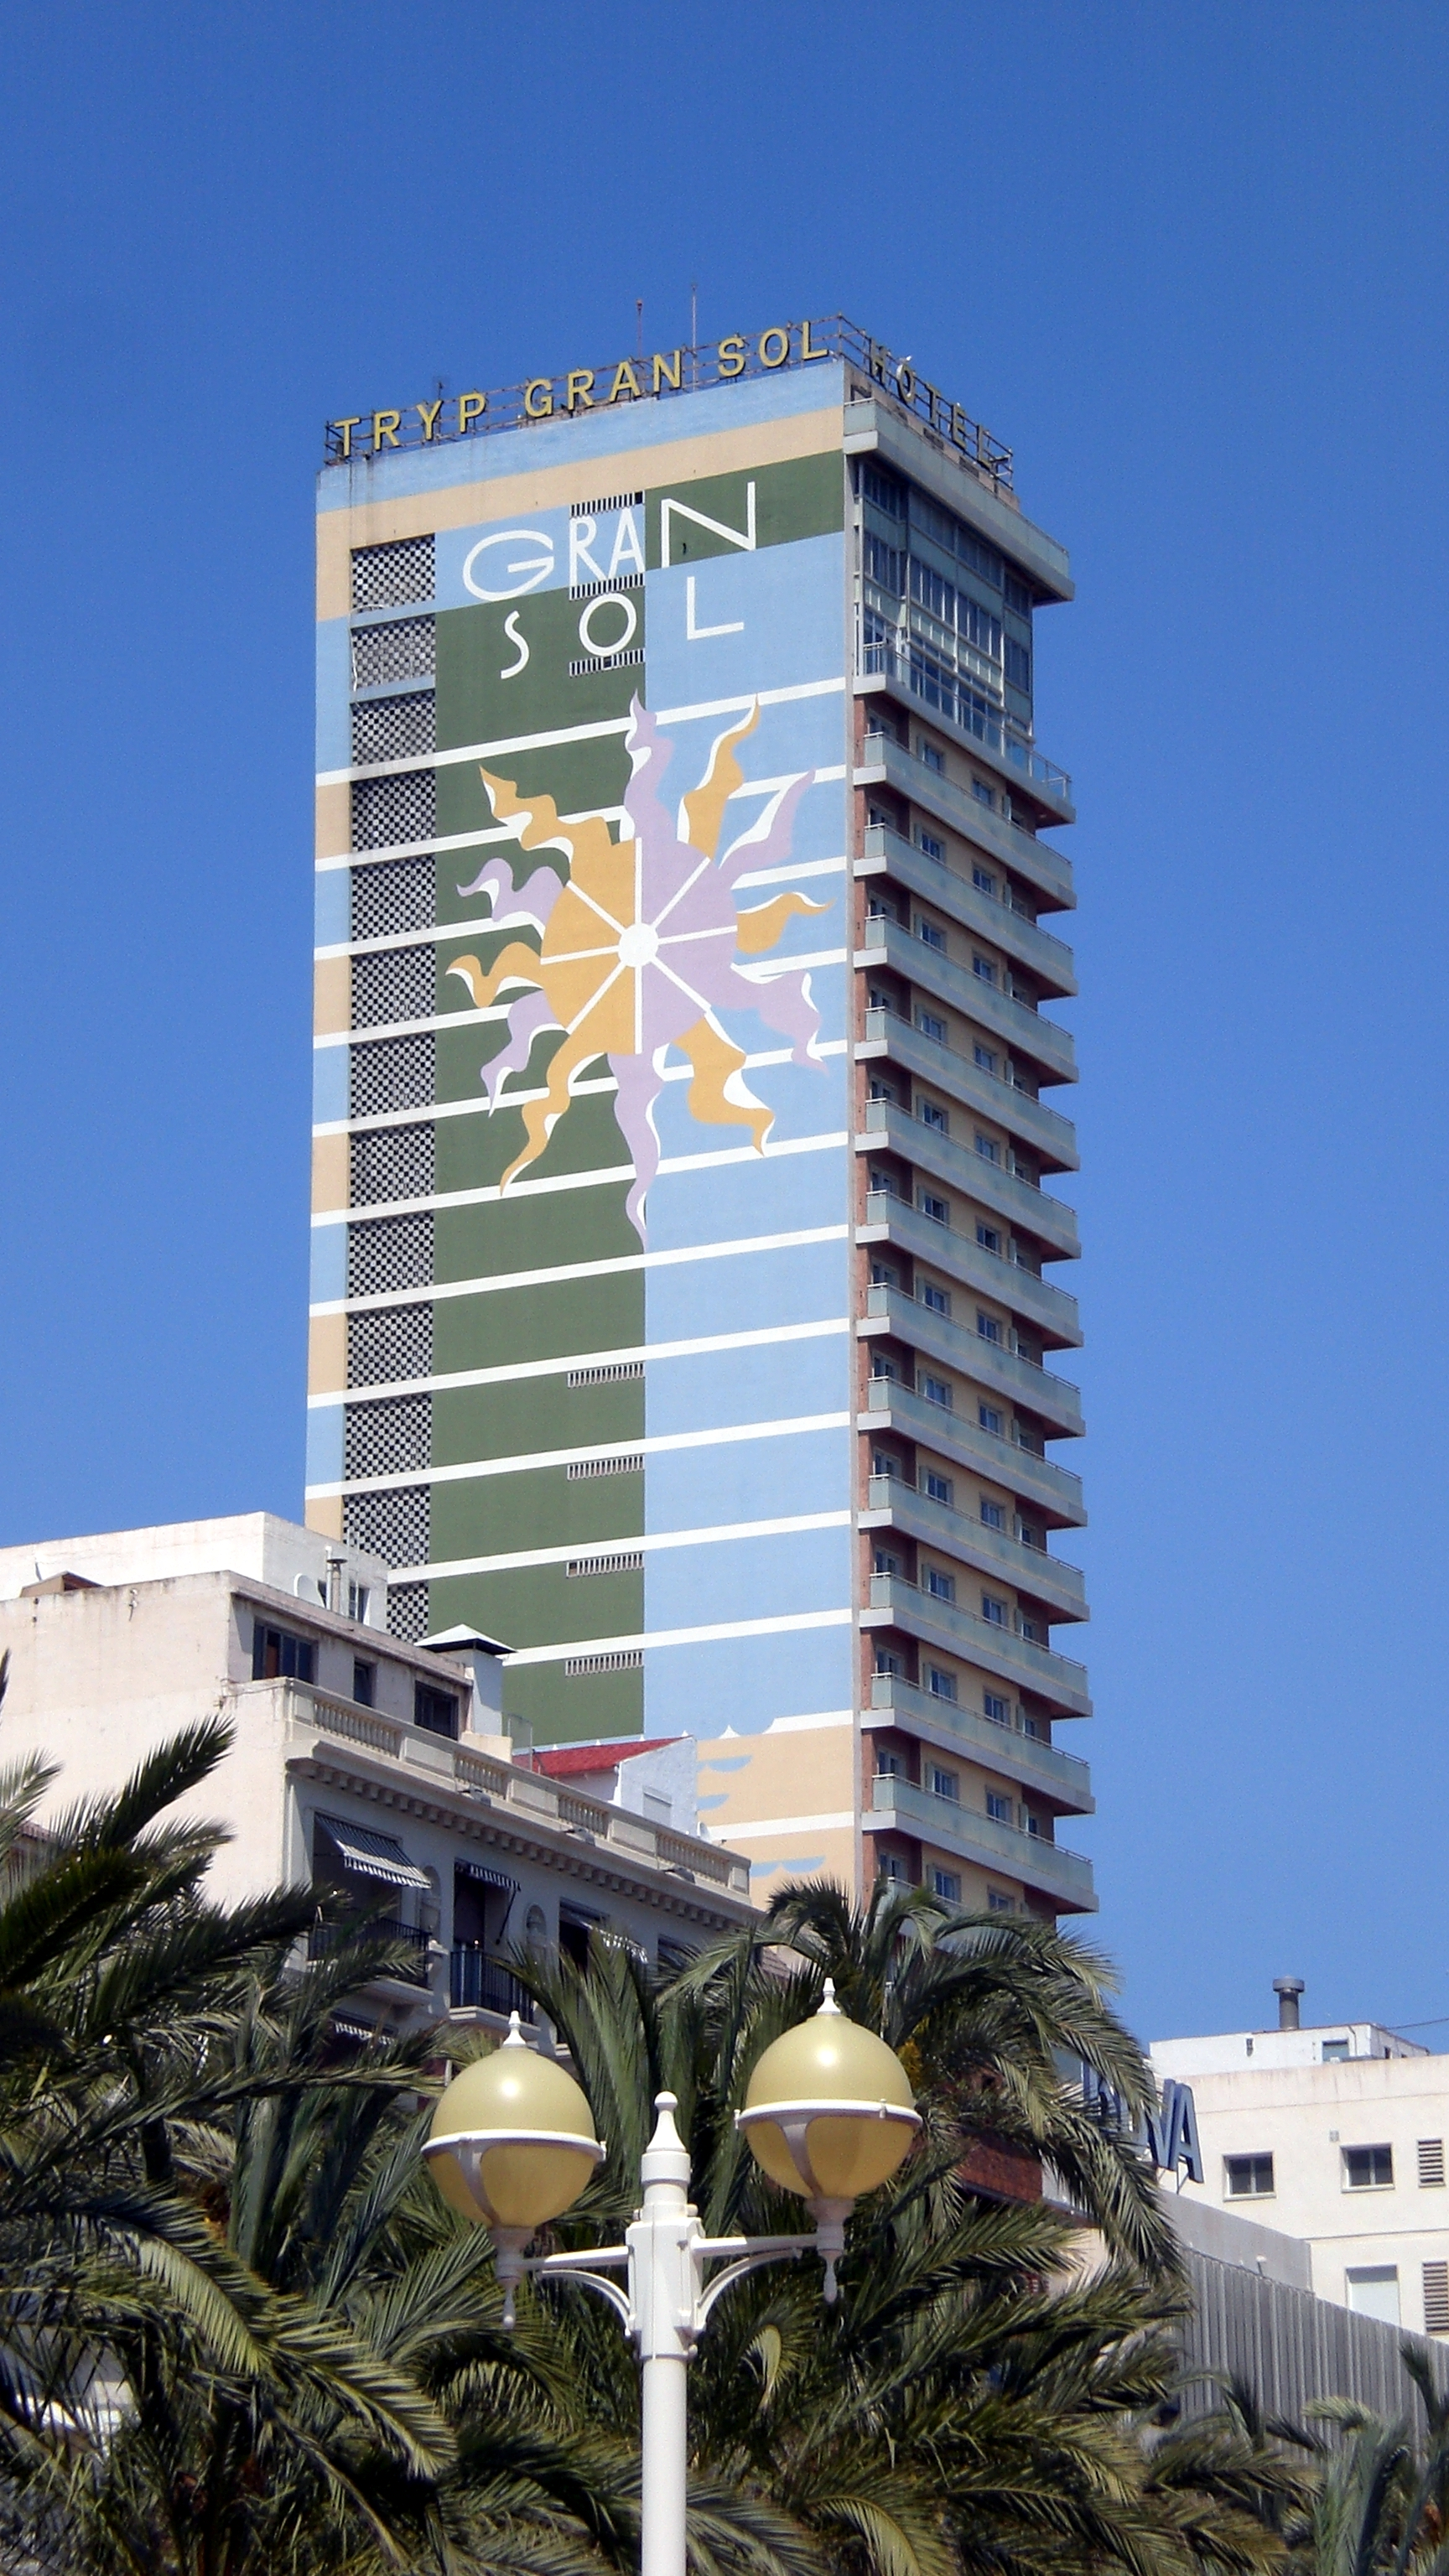 File:Tryp Grand Sol Hotel Alicante.jpg - Wikimedia Commons